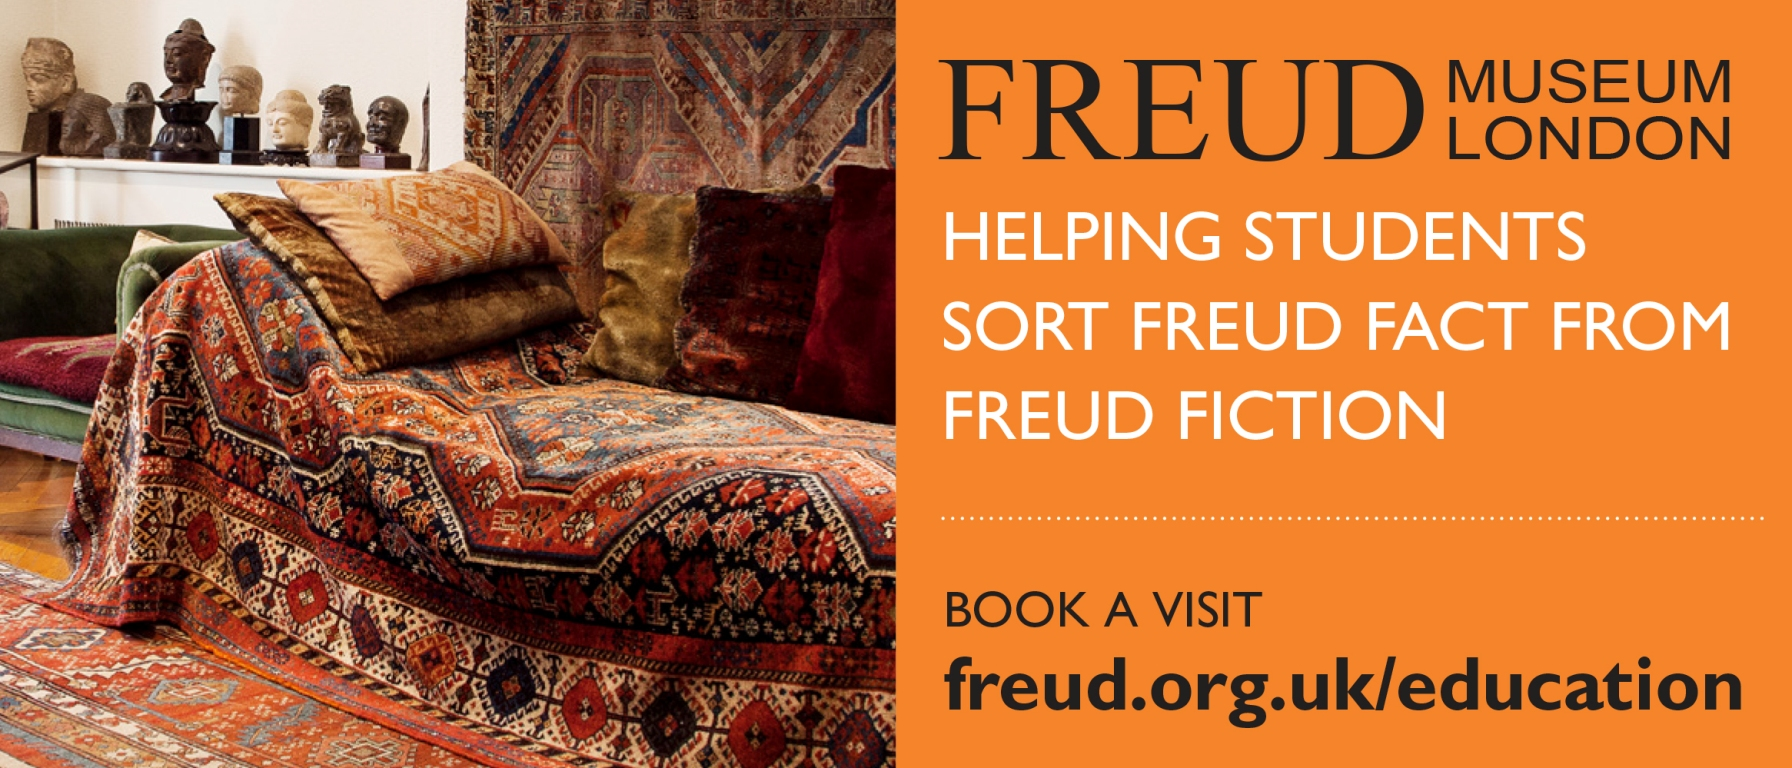 Freud Museum, London